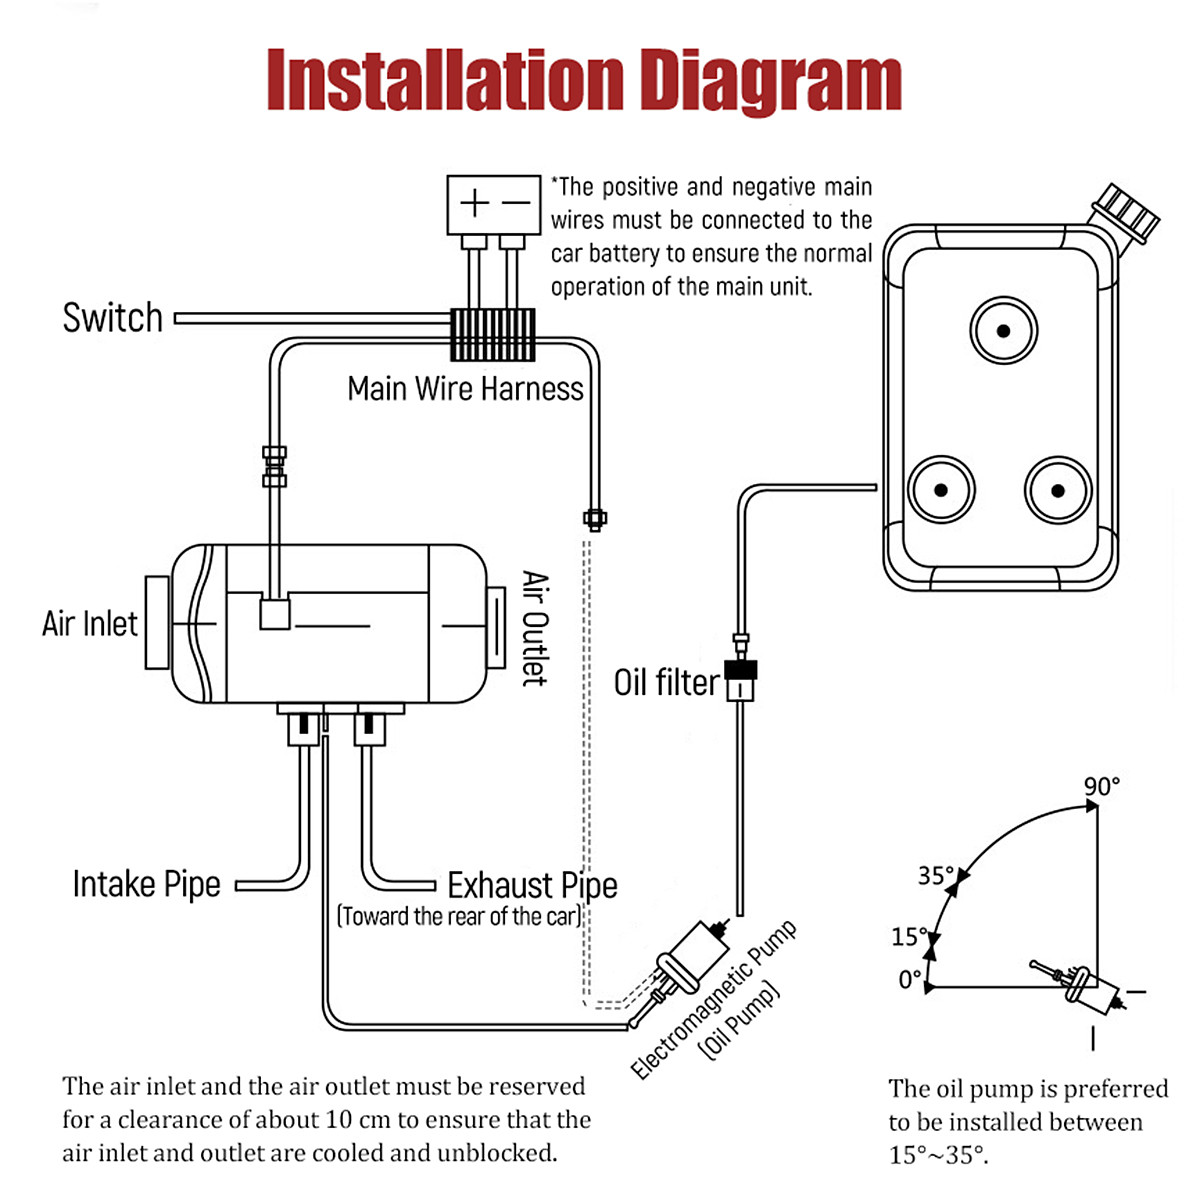 hight resolution of 12v fuel heater wiring diagram wiring diagram 12v 8kw air diesels fuel heater lcd thermostat for